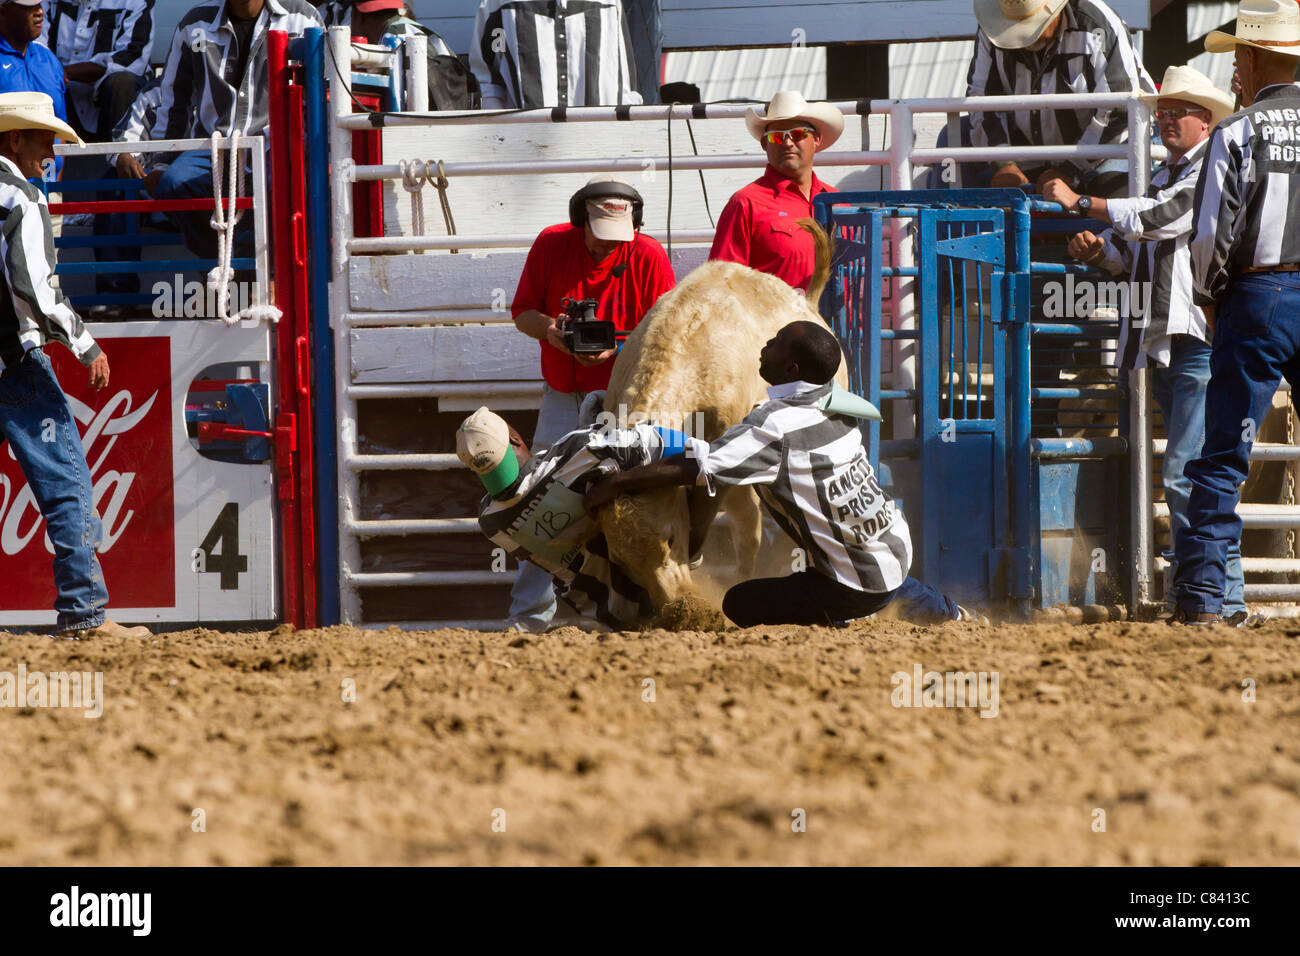 Angola Bulldogging at the Angola State Prison Rodeo in Louisiana State Penitentiary - Stock Image